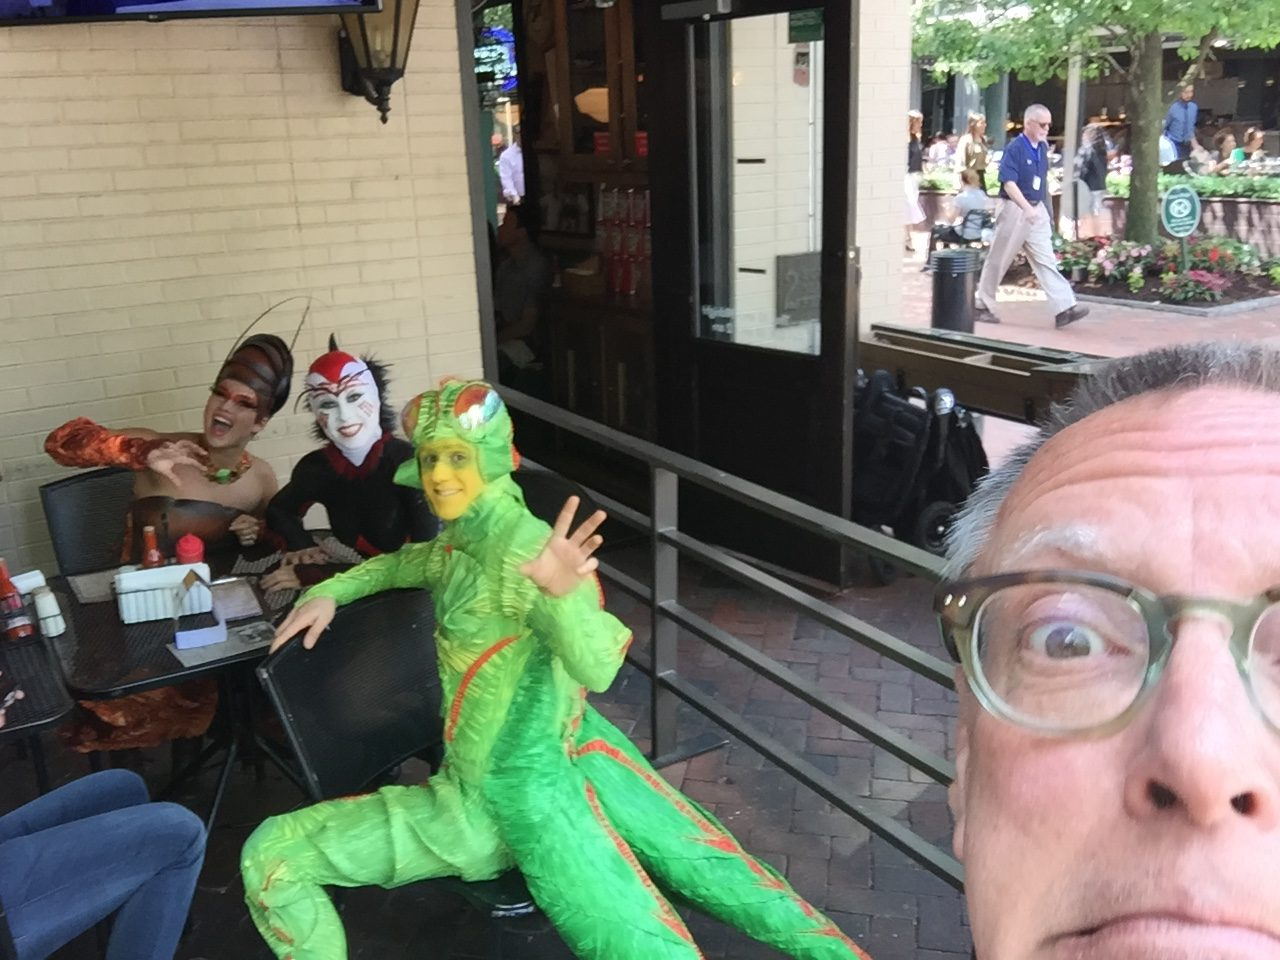 Yakkin' With YaJagoff, At Primanti's With Cirque du Soleil